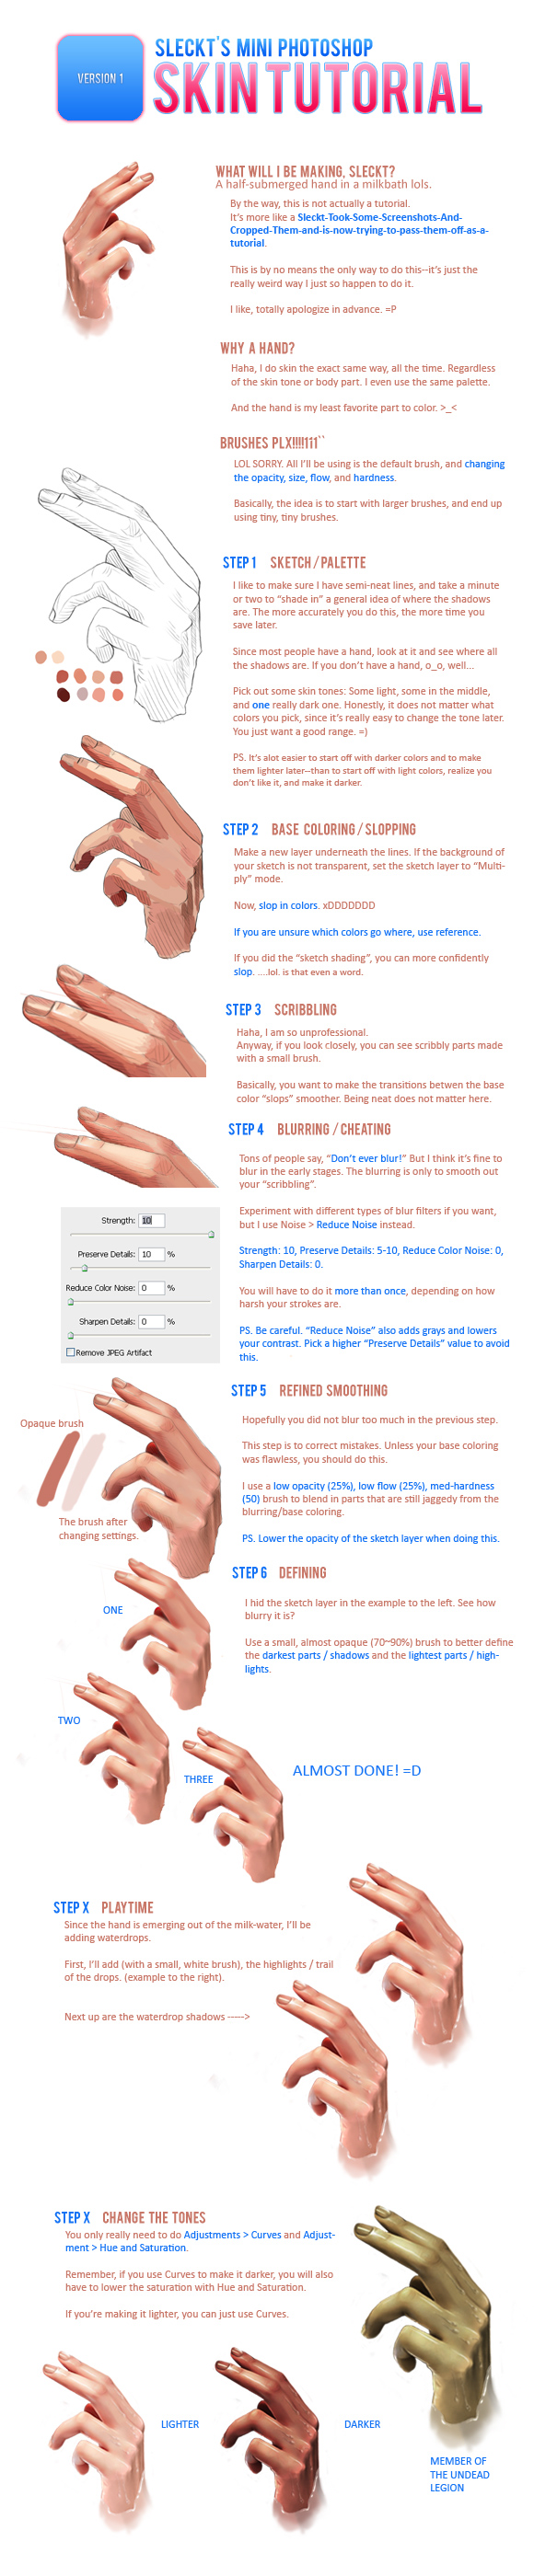 Coloring Skin Tutorial by sleckt